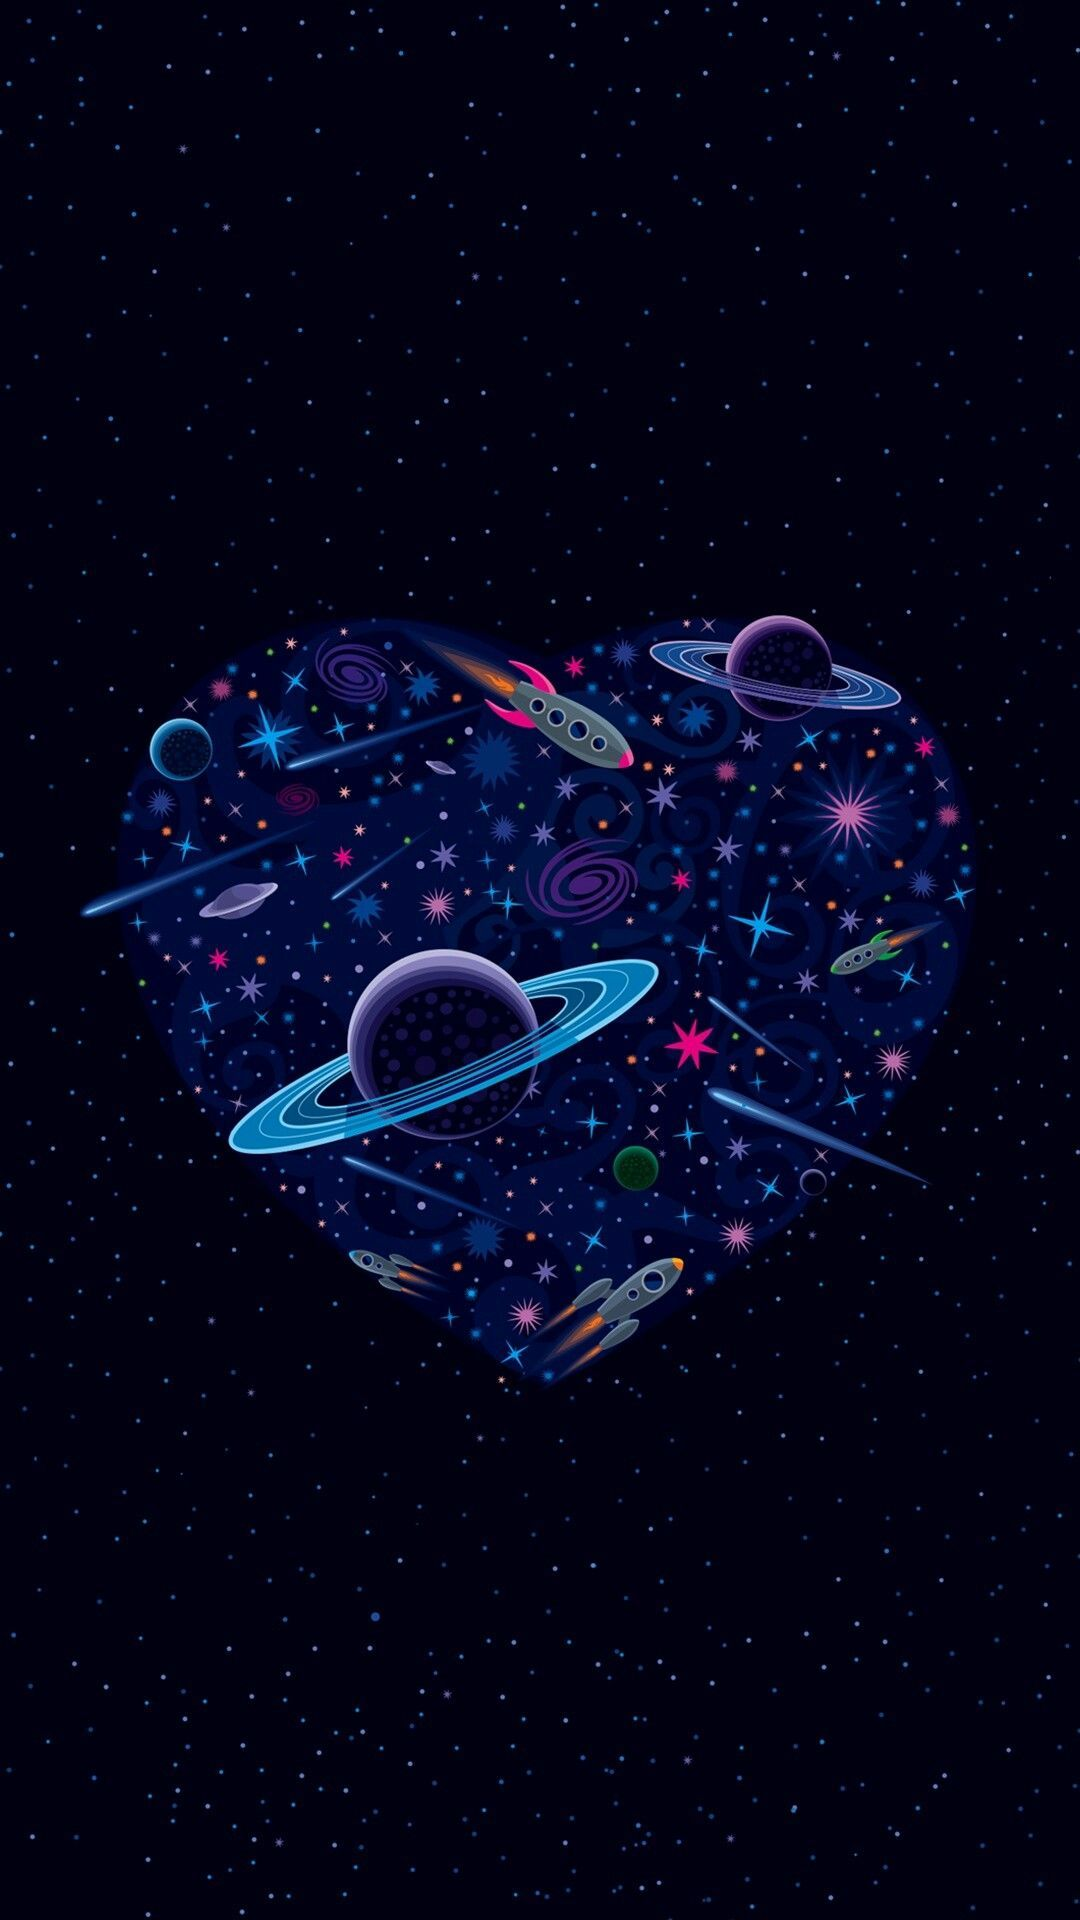 Space iPhone wallpaper in 2019 Galaxy wallpaper Tumblr